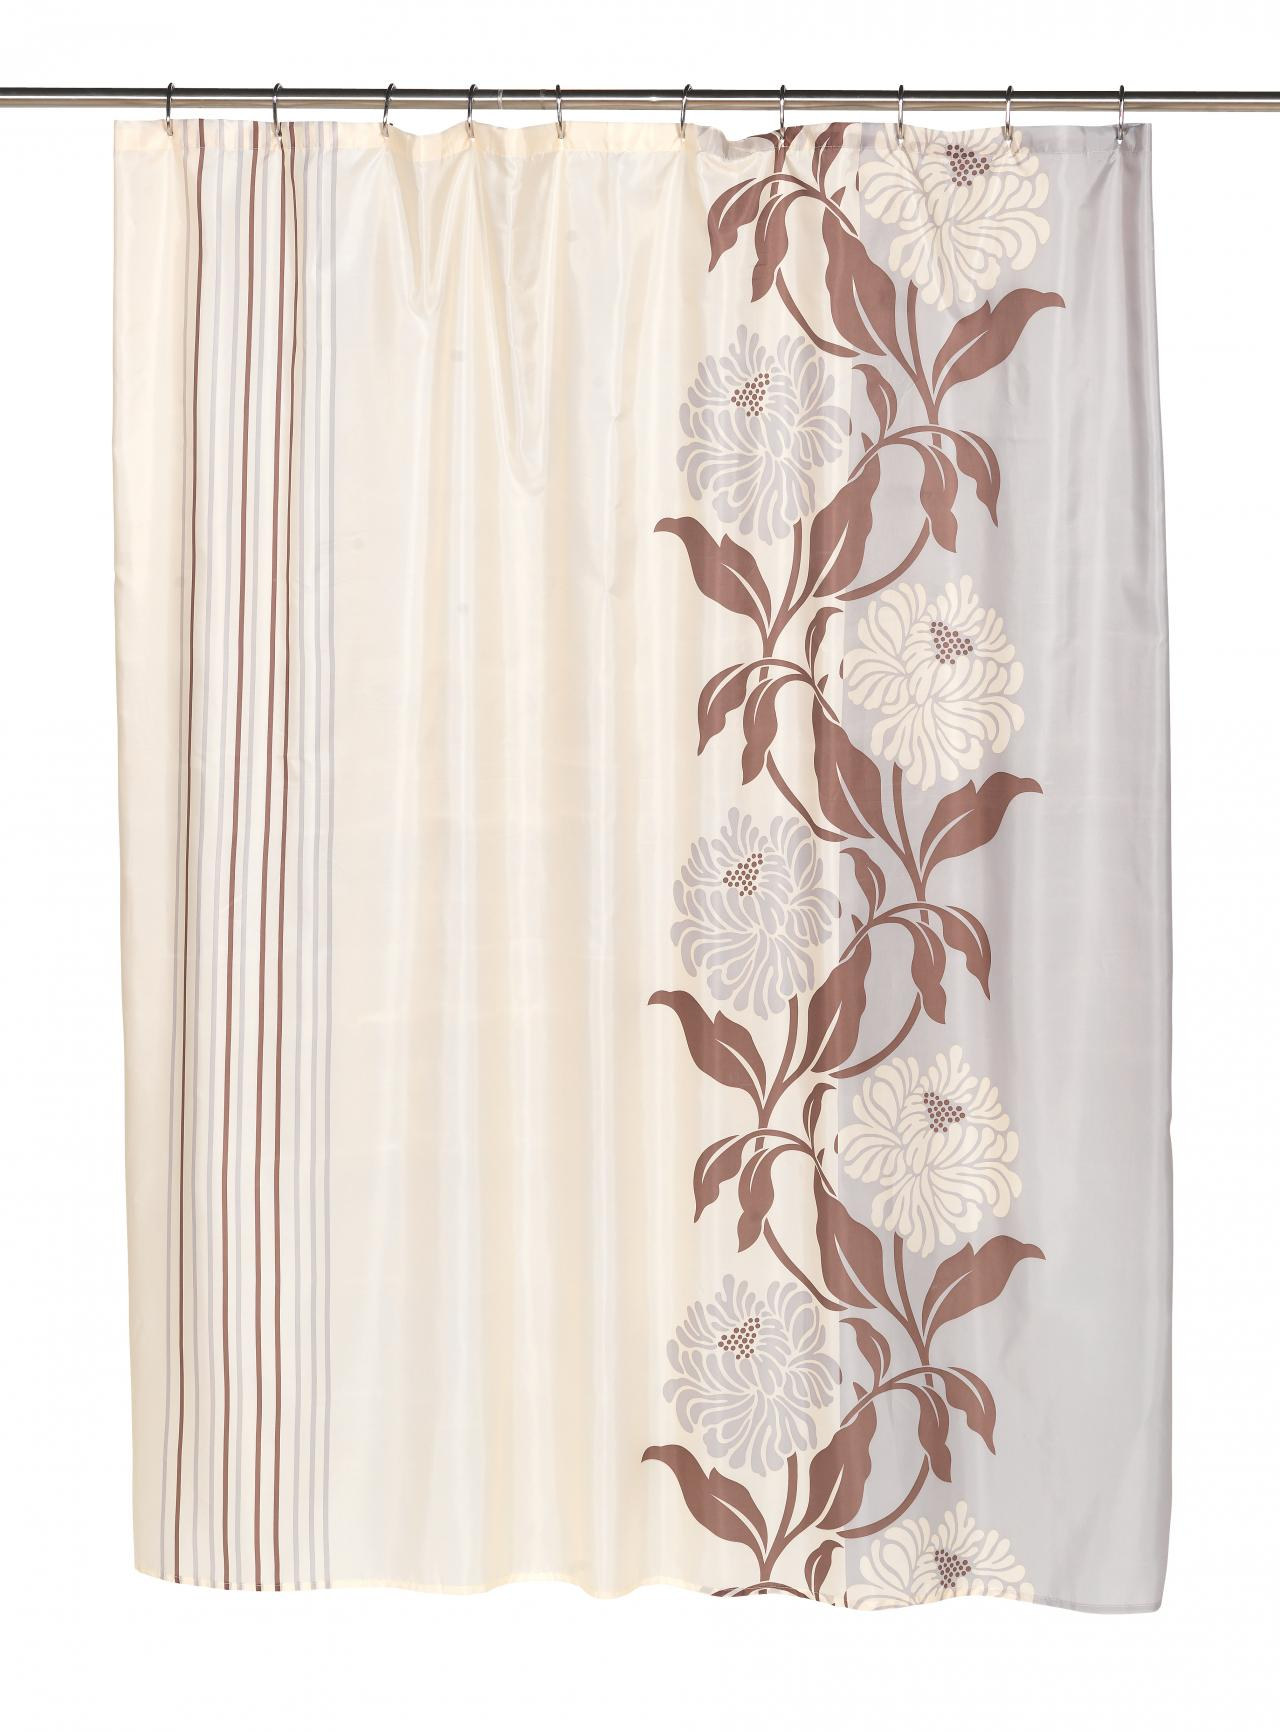 curtains moen elephant curtain x the replacement stall one valve plates piece baby shower units under sea